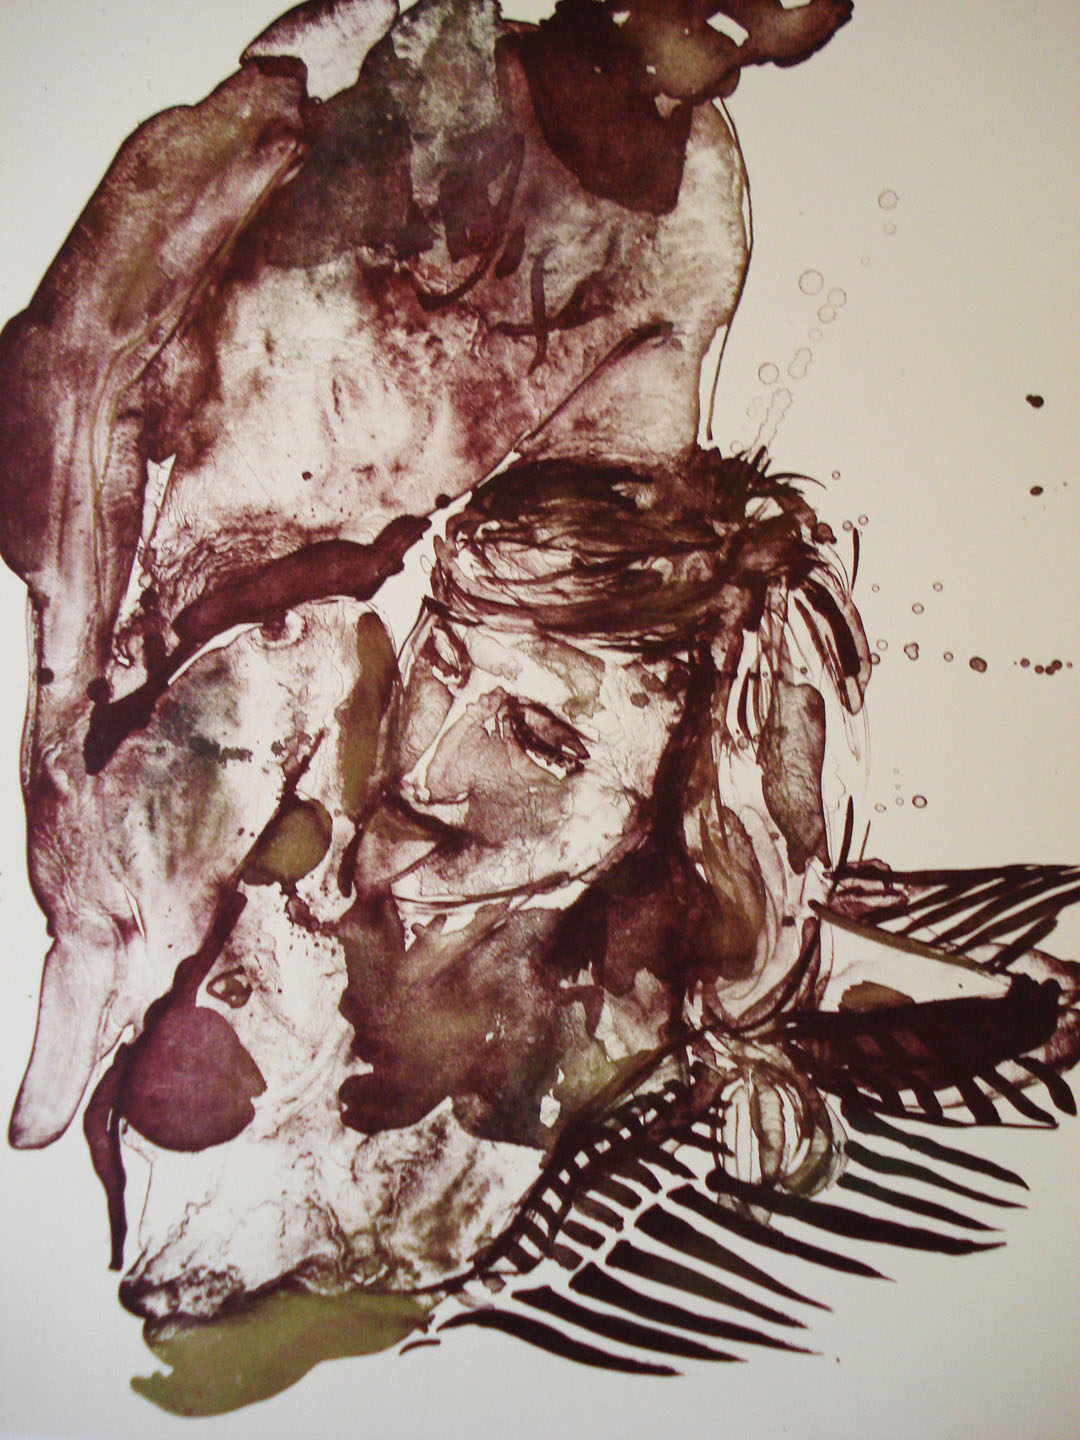 Penal Code 269 a and b #4;2007    Reductive Stone Lithograph, 18 x 15 in